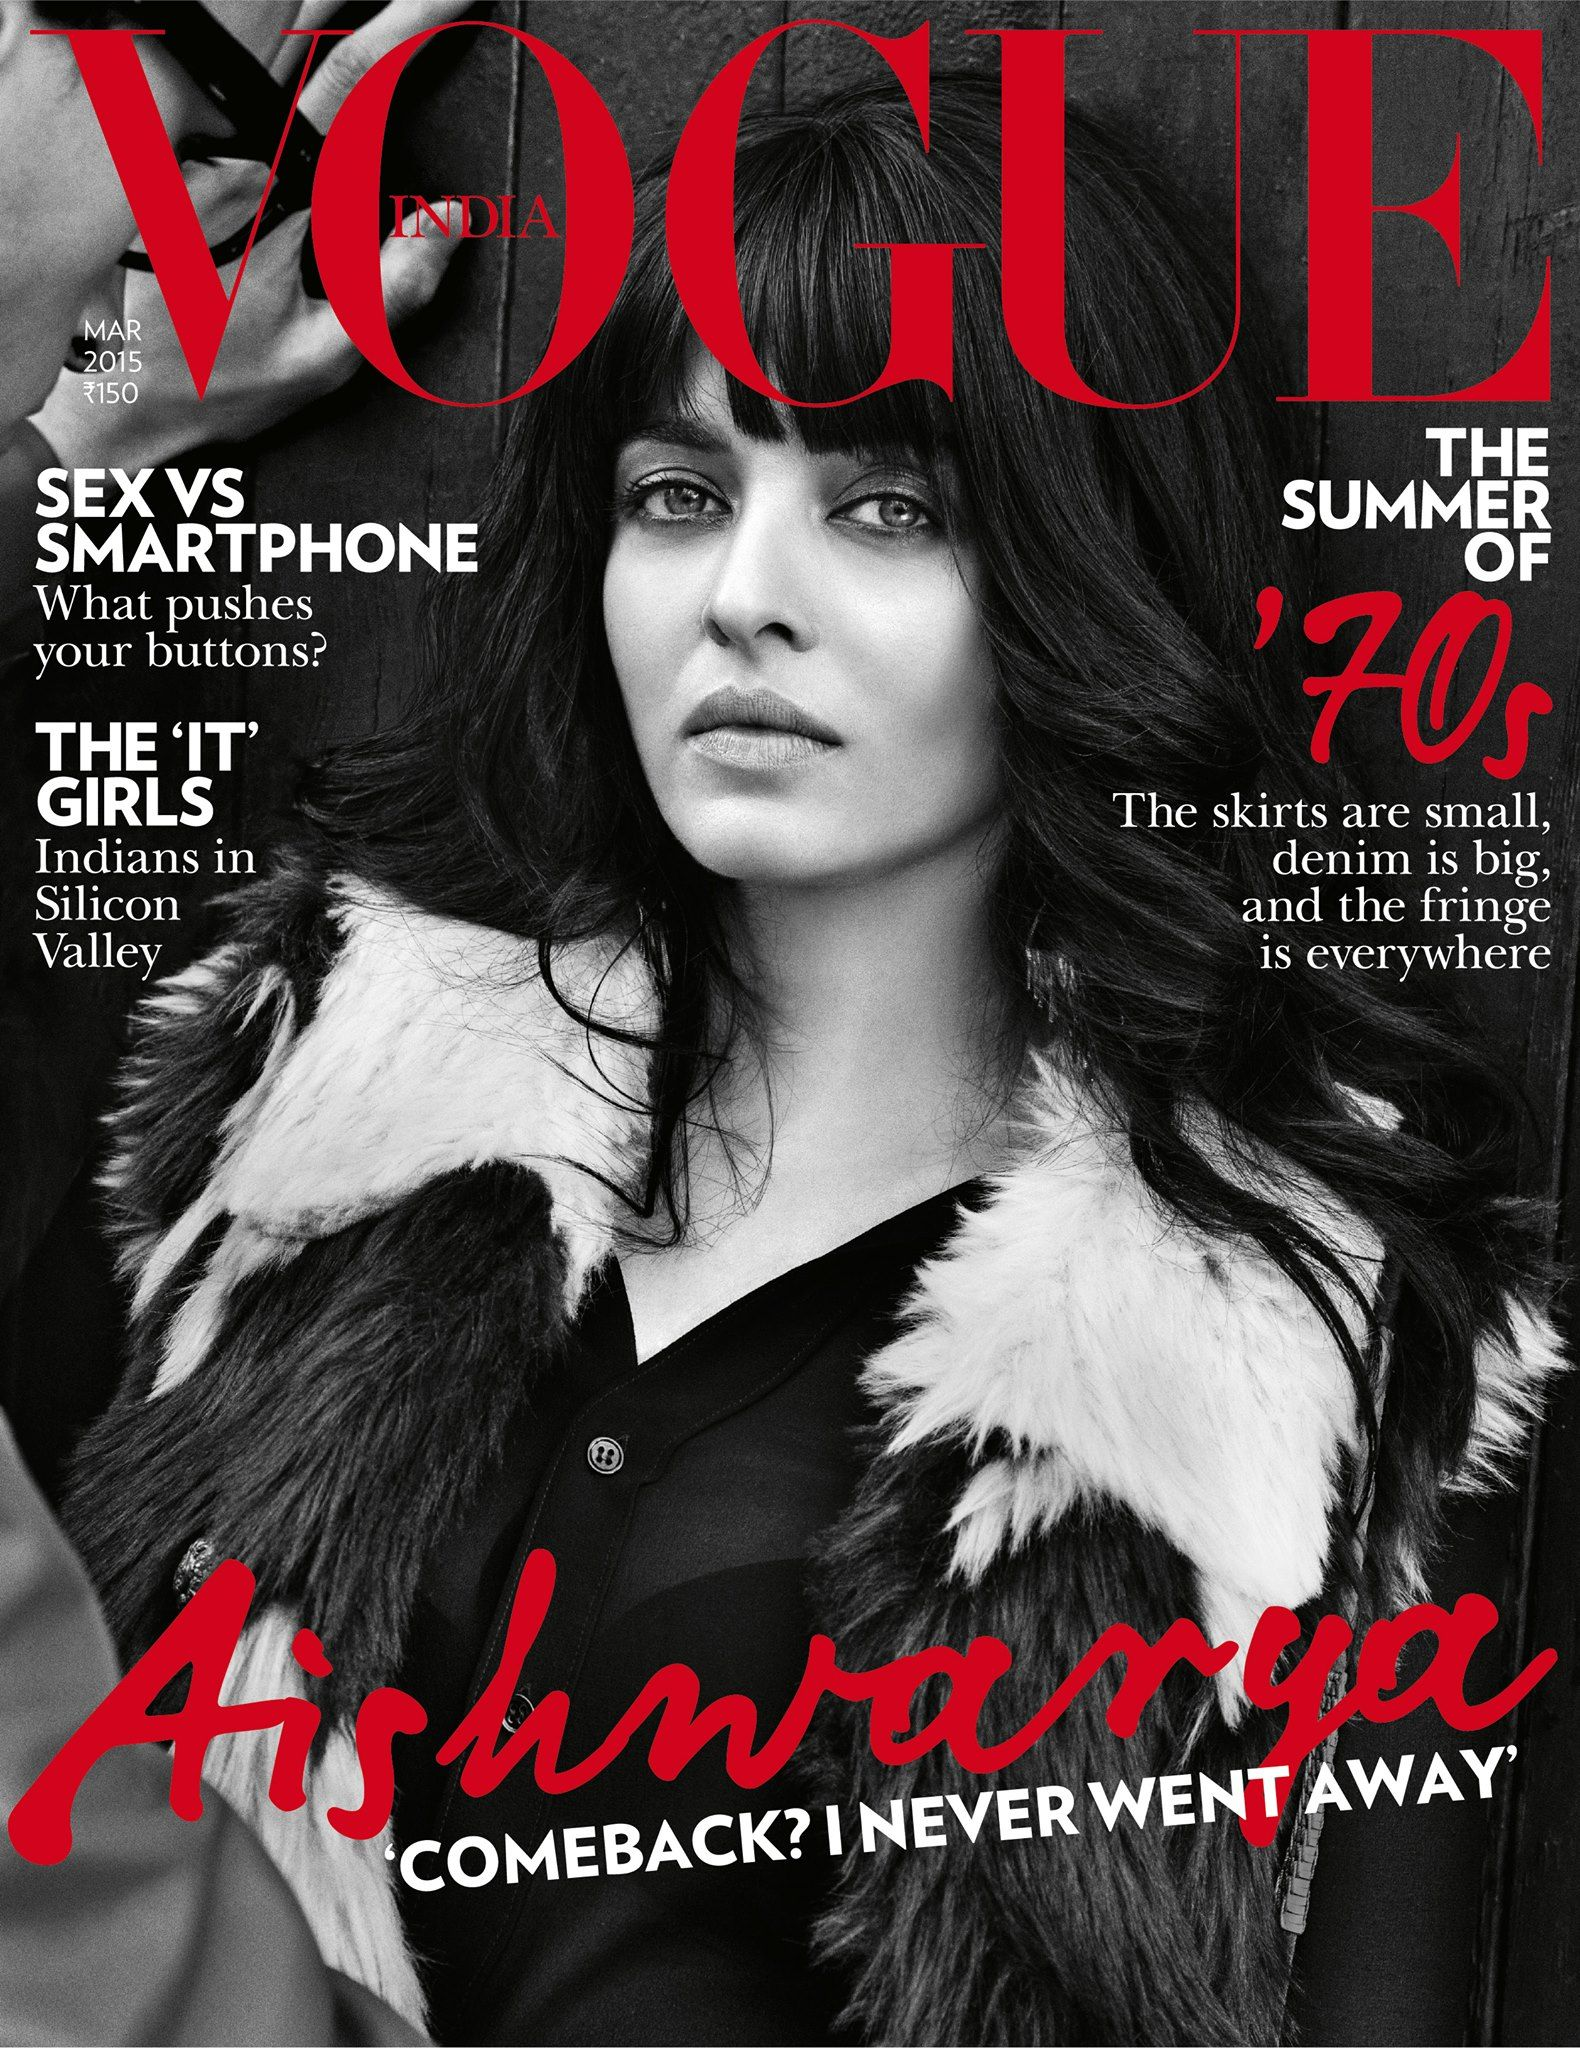 Portman to Vogue: Sex is Everywhere